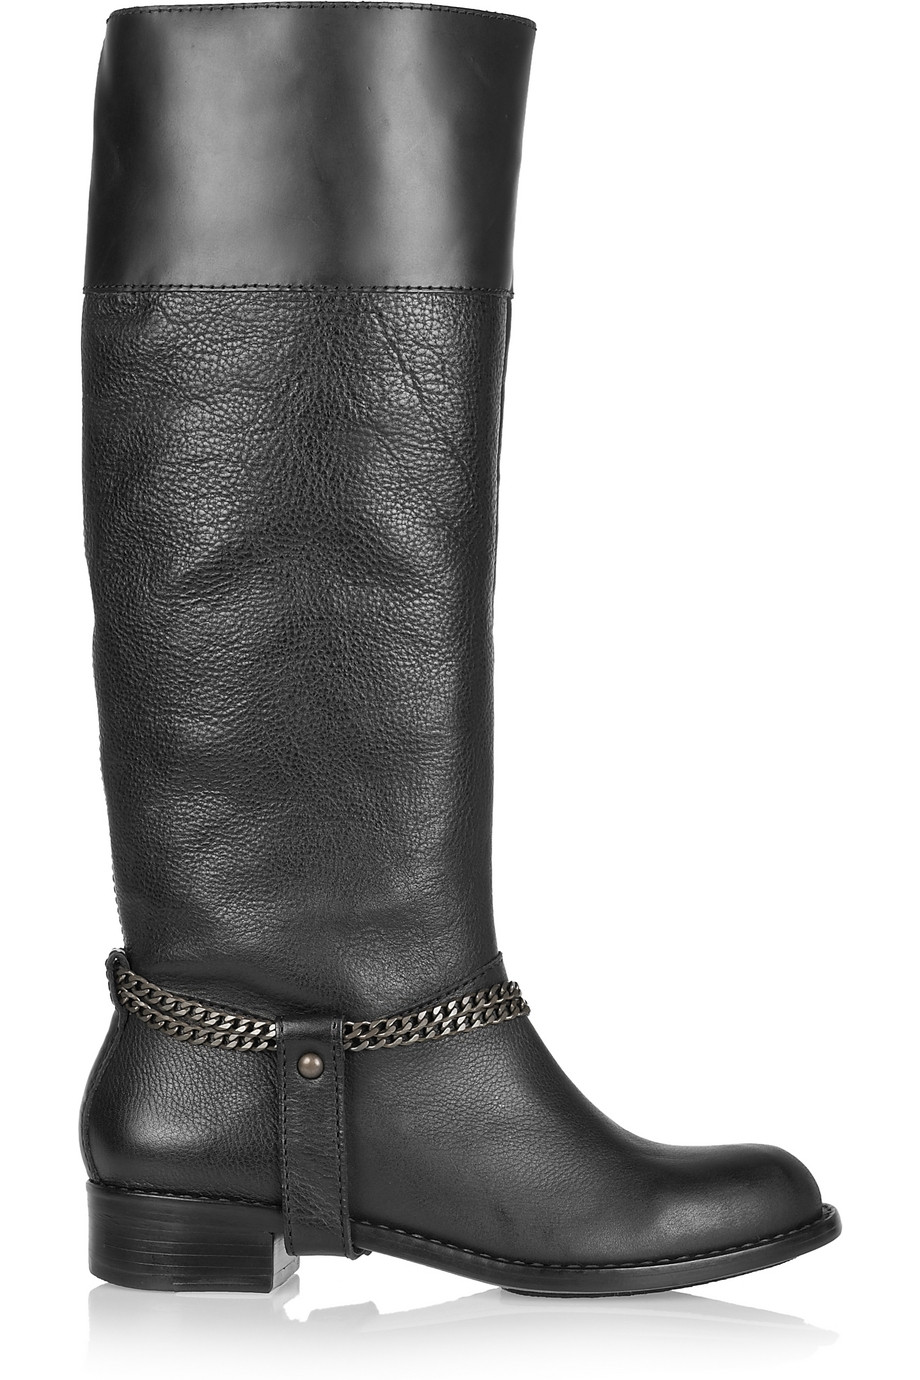 DKNY Megan Chain-embellished Riding Boots in Black